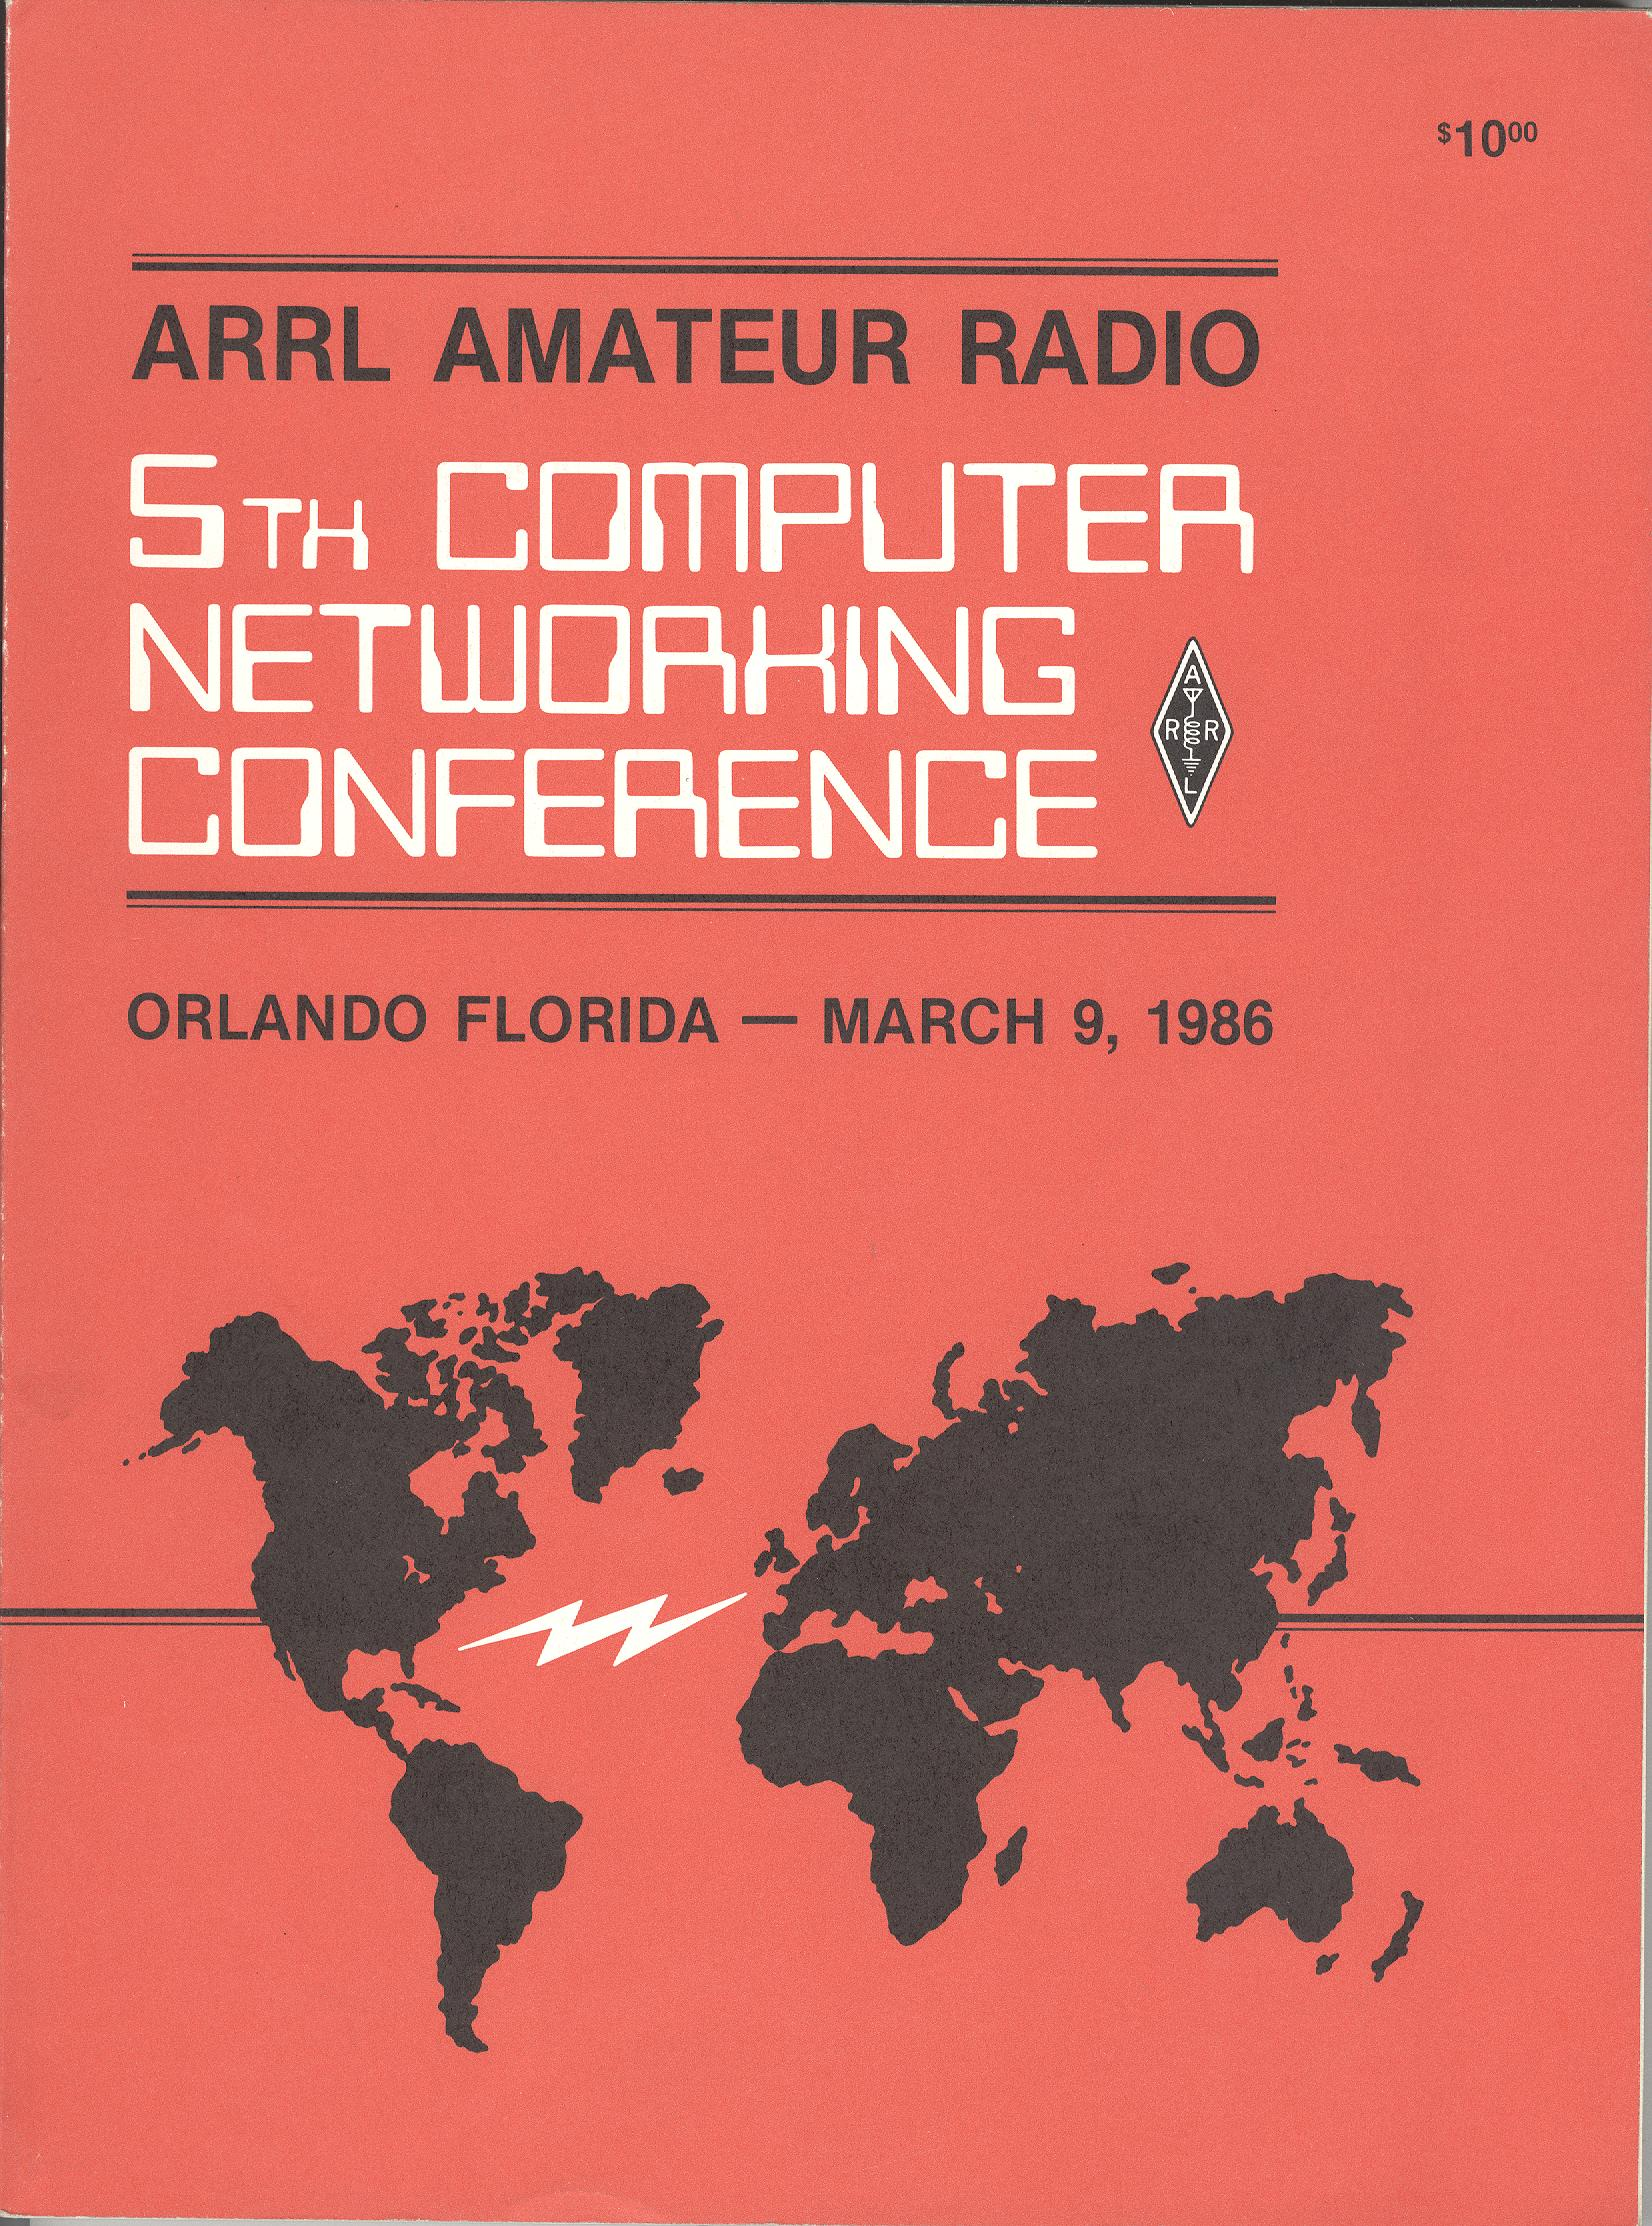 5th ARRL Amateur Radio Computer Networking Conference